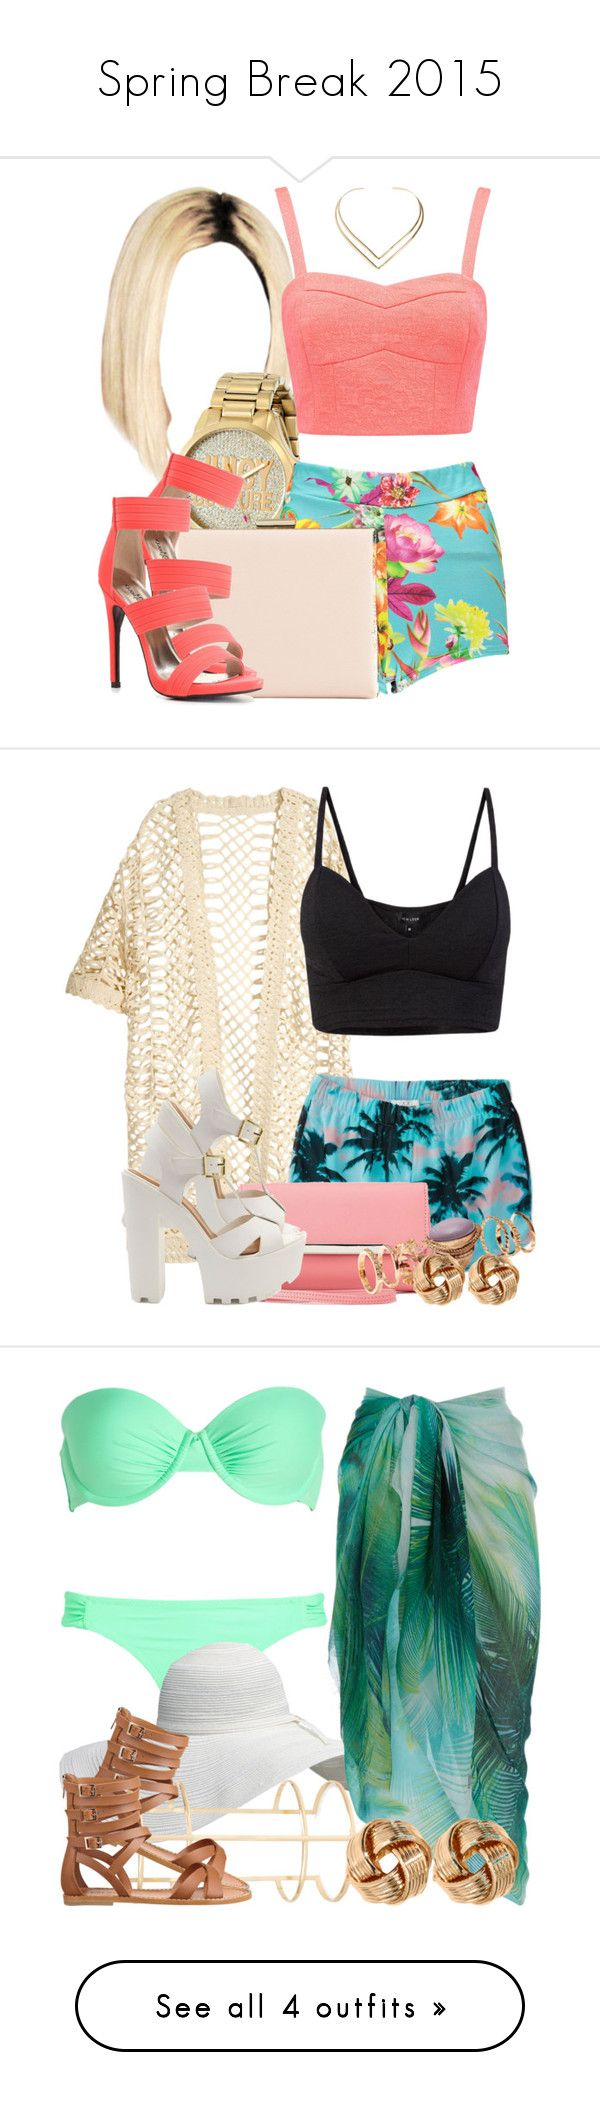 """""""Spring Break 2015"""" by miizz-starburst ❤ liked on Polyvore featuring Juicy Couture, Boohoo, Forever New, Natalie B, ALDO, Charlotte Russe, H&M, Forever 21, Accessorize and Nine West"""